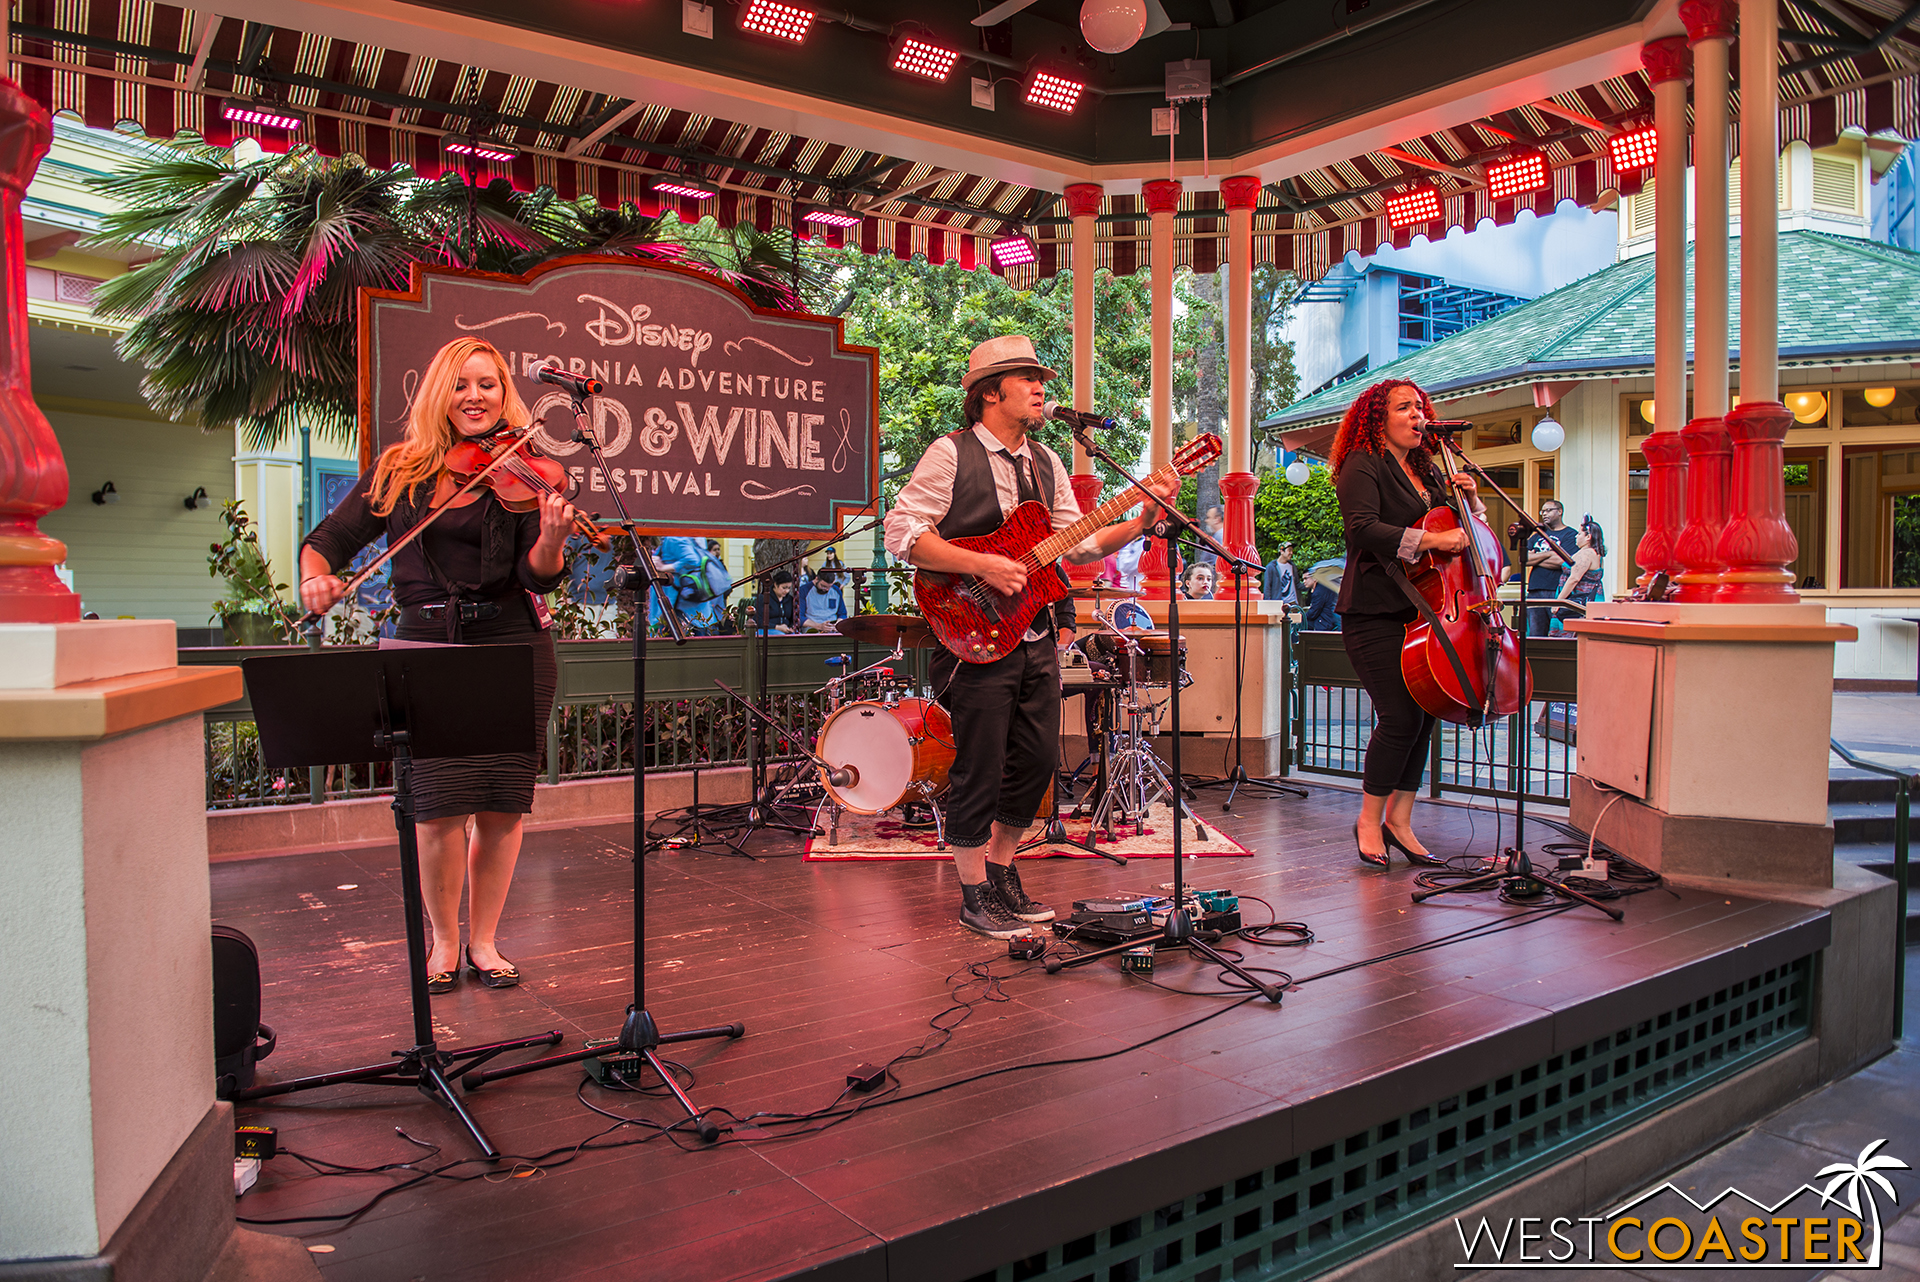 I didn't photograph this in the update two weeks ago, but I did mention that there was live music over at the Garden Grill bandstand area too, in addition to at Paradise Park.